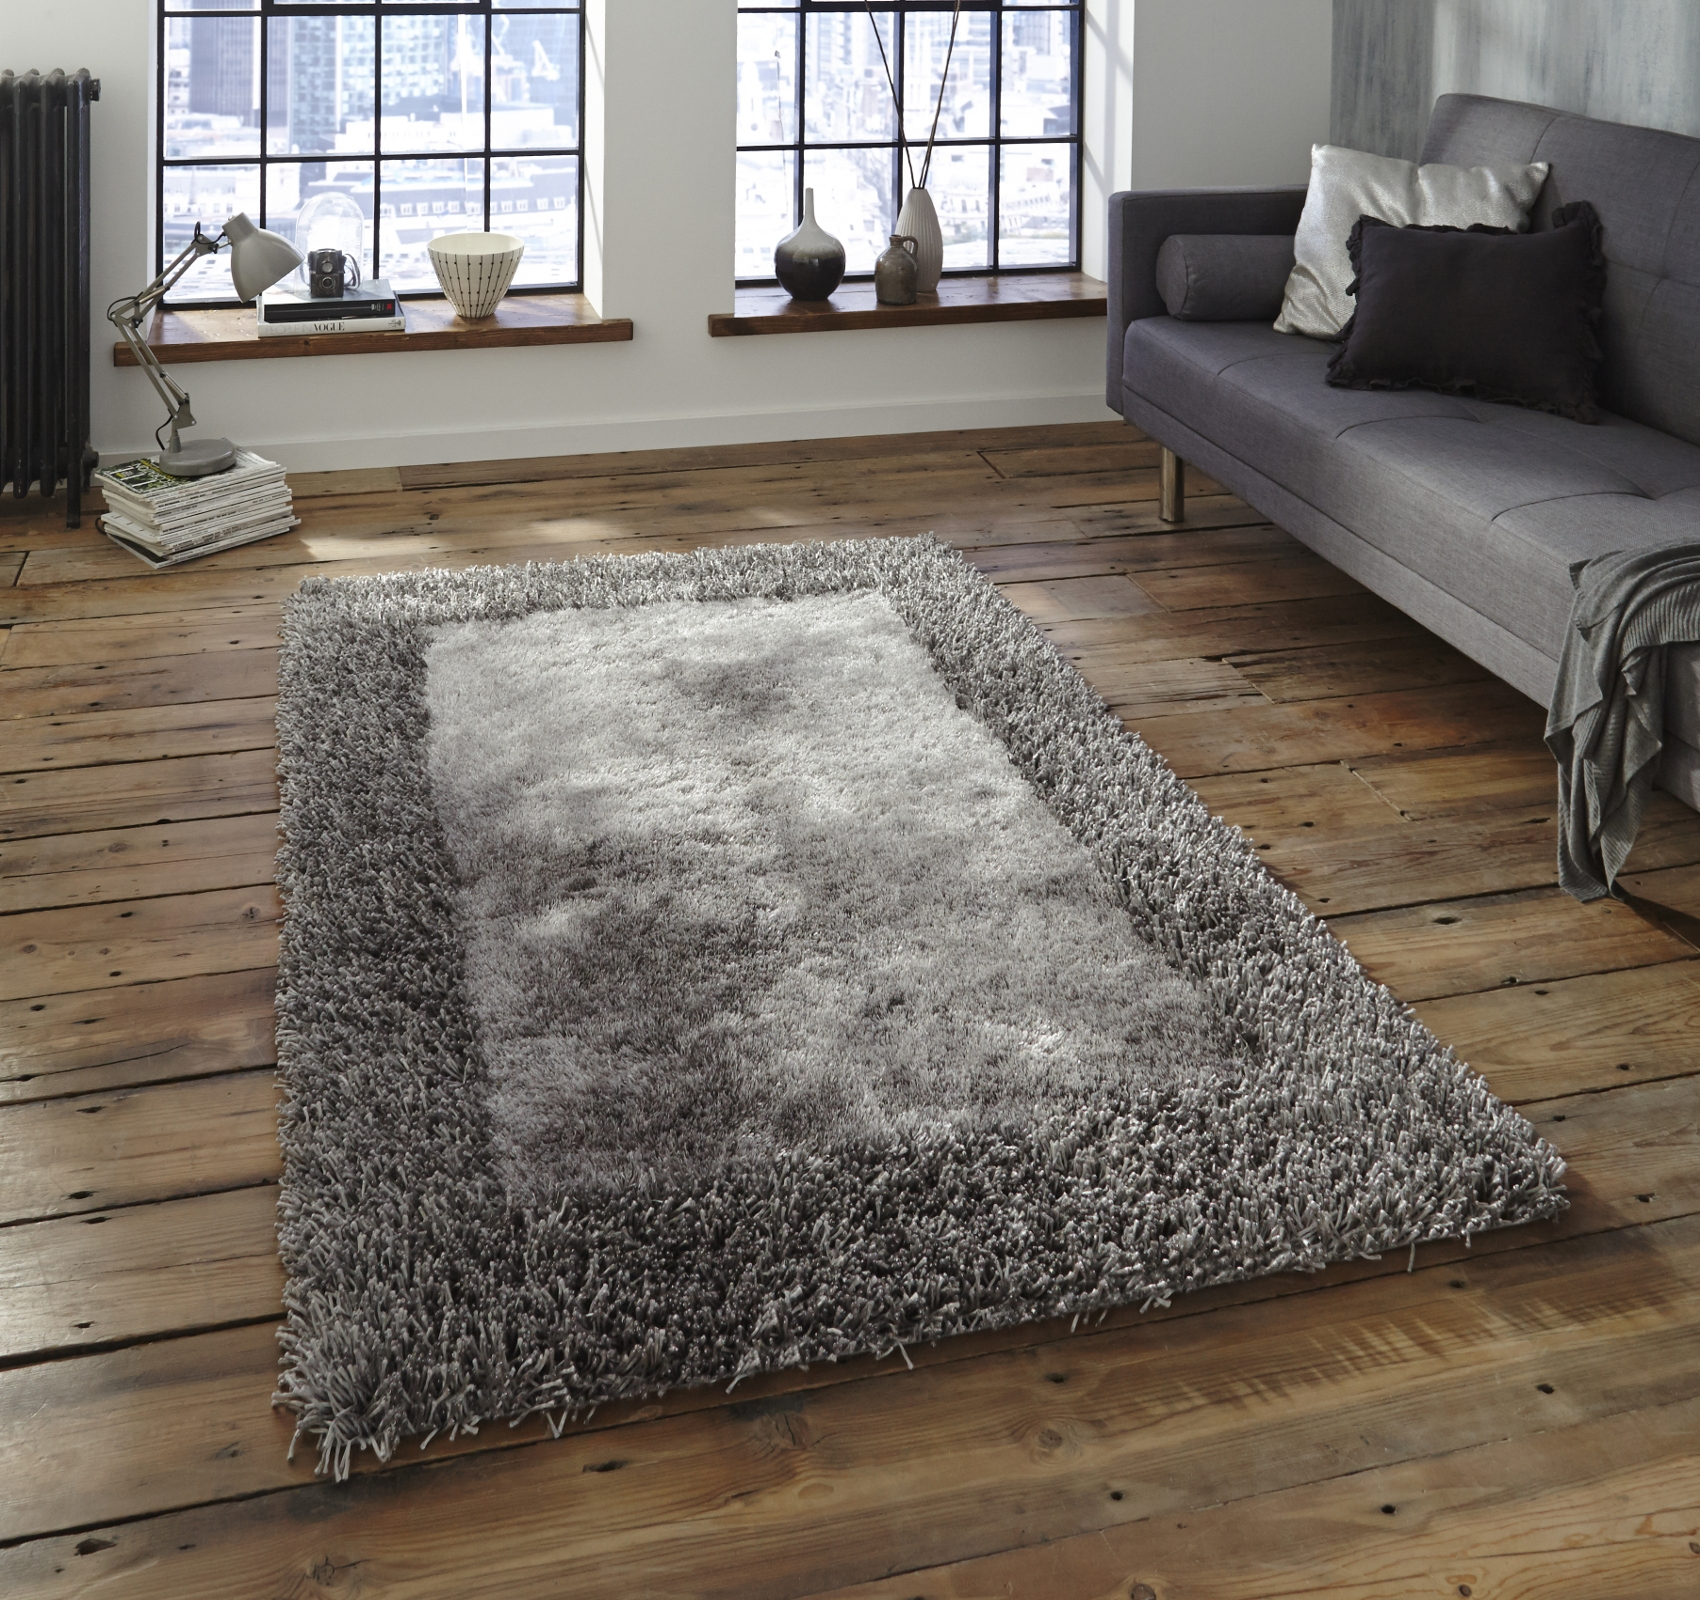 Soft Sable Shaggy Pile Rug Hand Tufted Rectangle Design Floor Mat Pertaining To Thick Rugs (View 3 of 15)